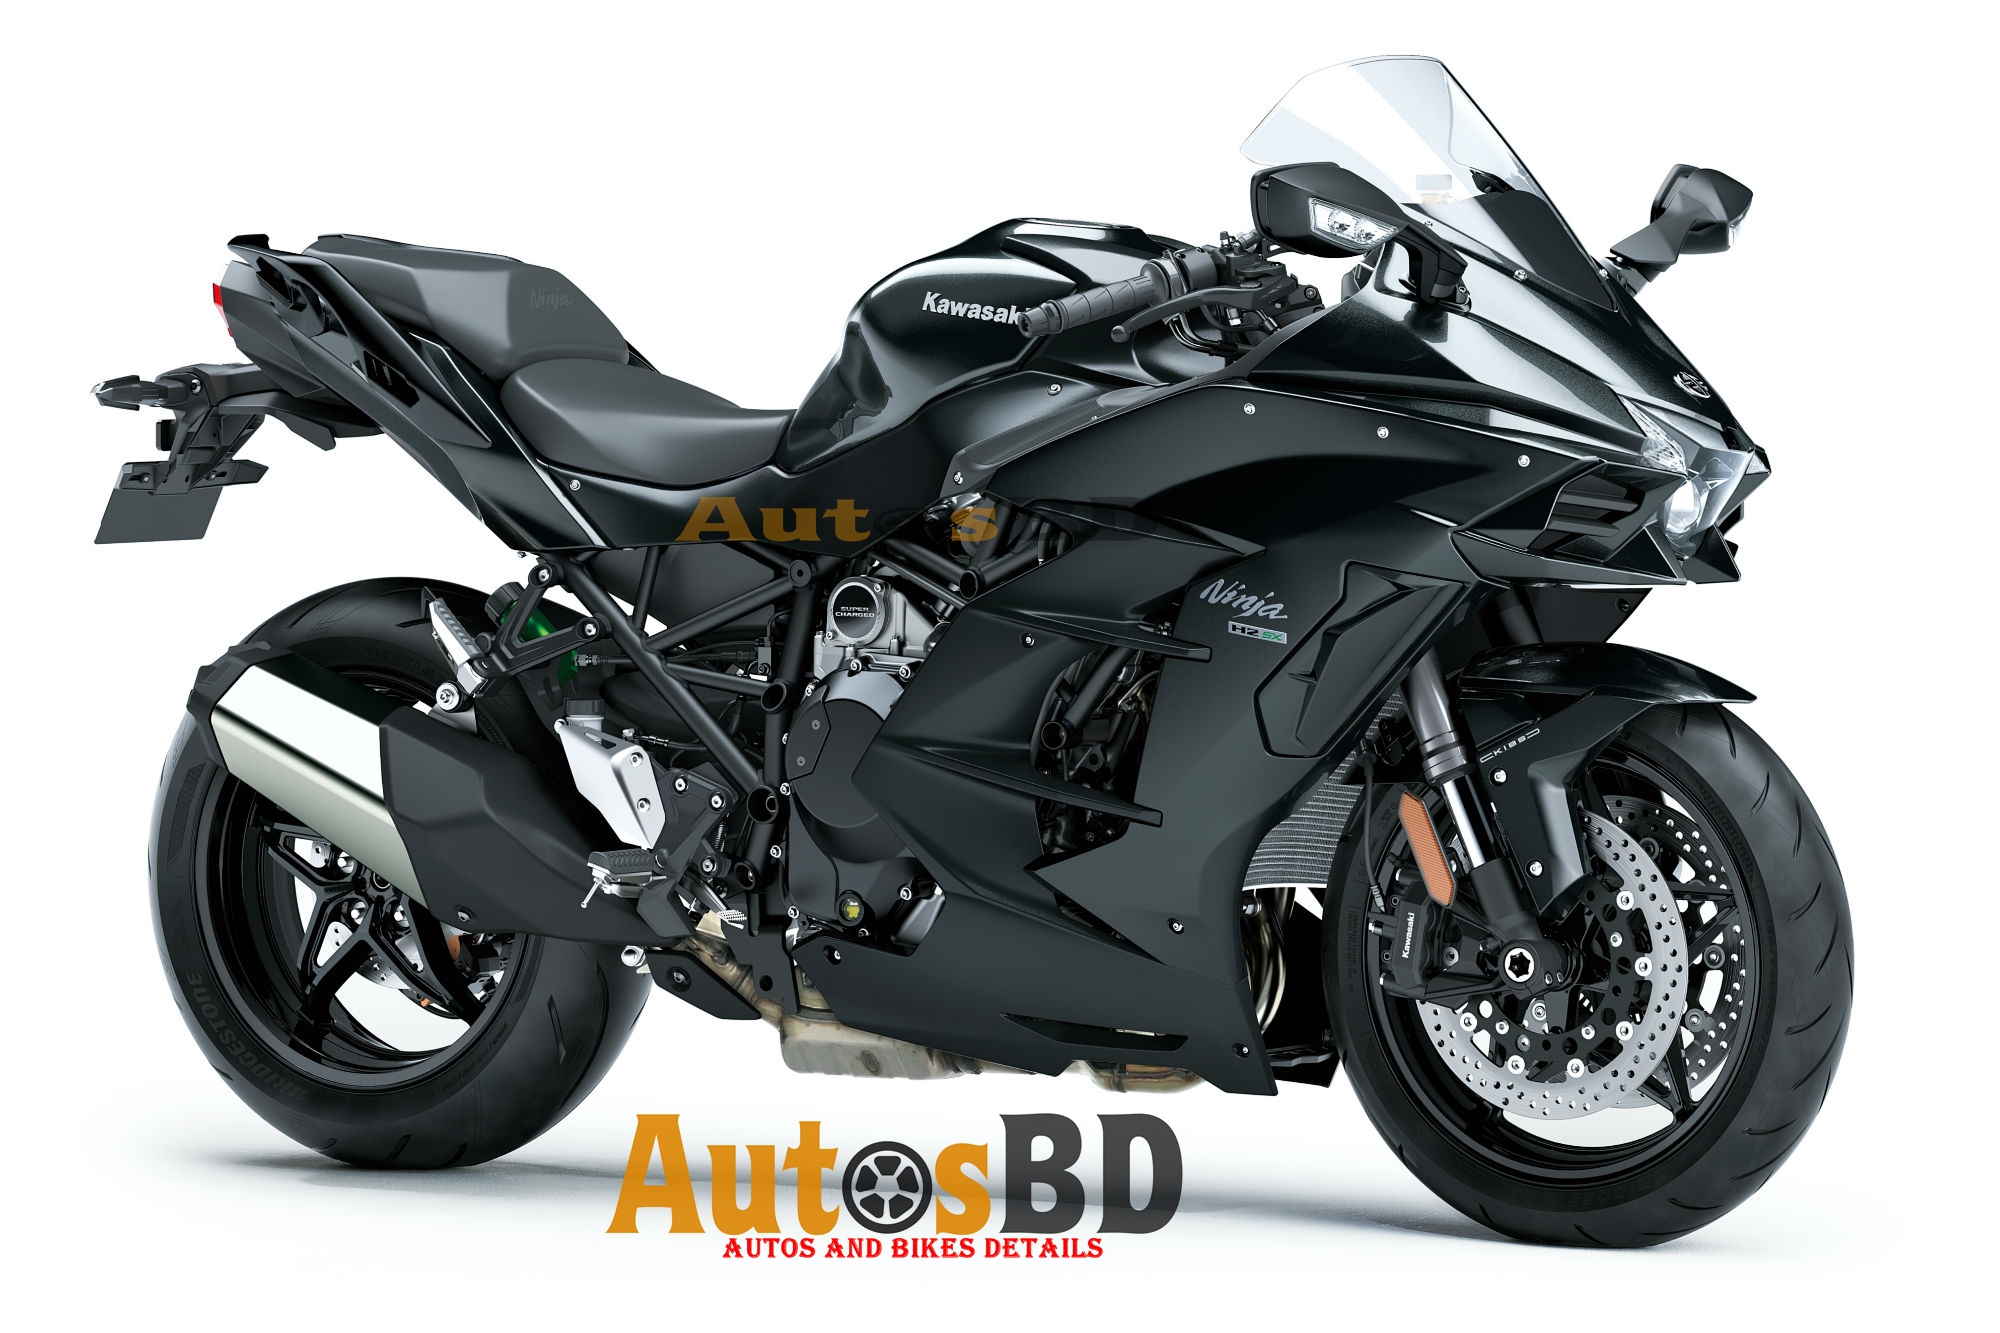 Kawasaki Ninja H2 SX Motorcycle Price in India